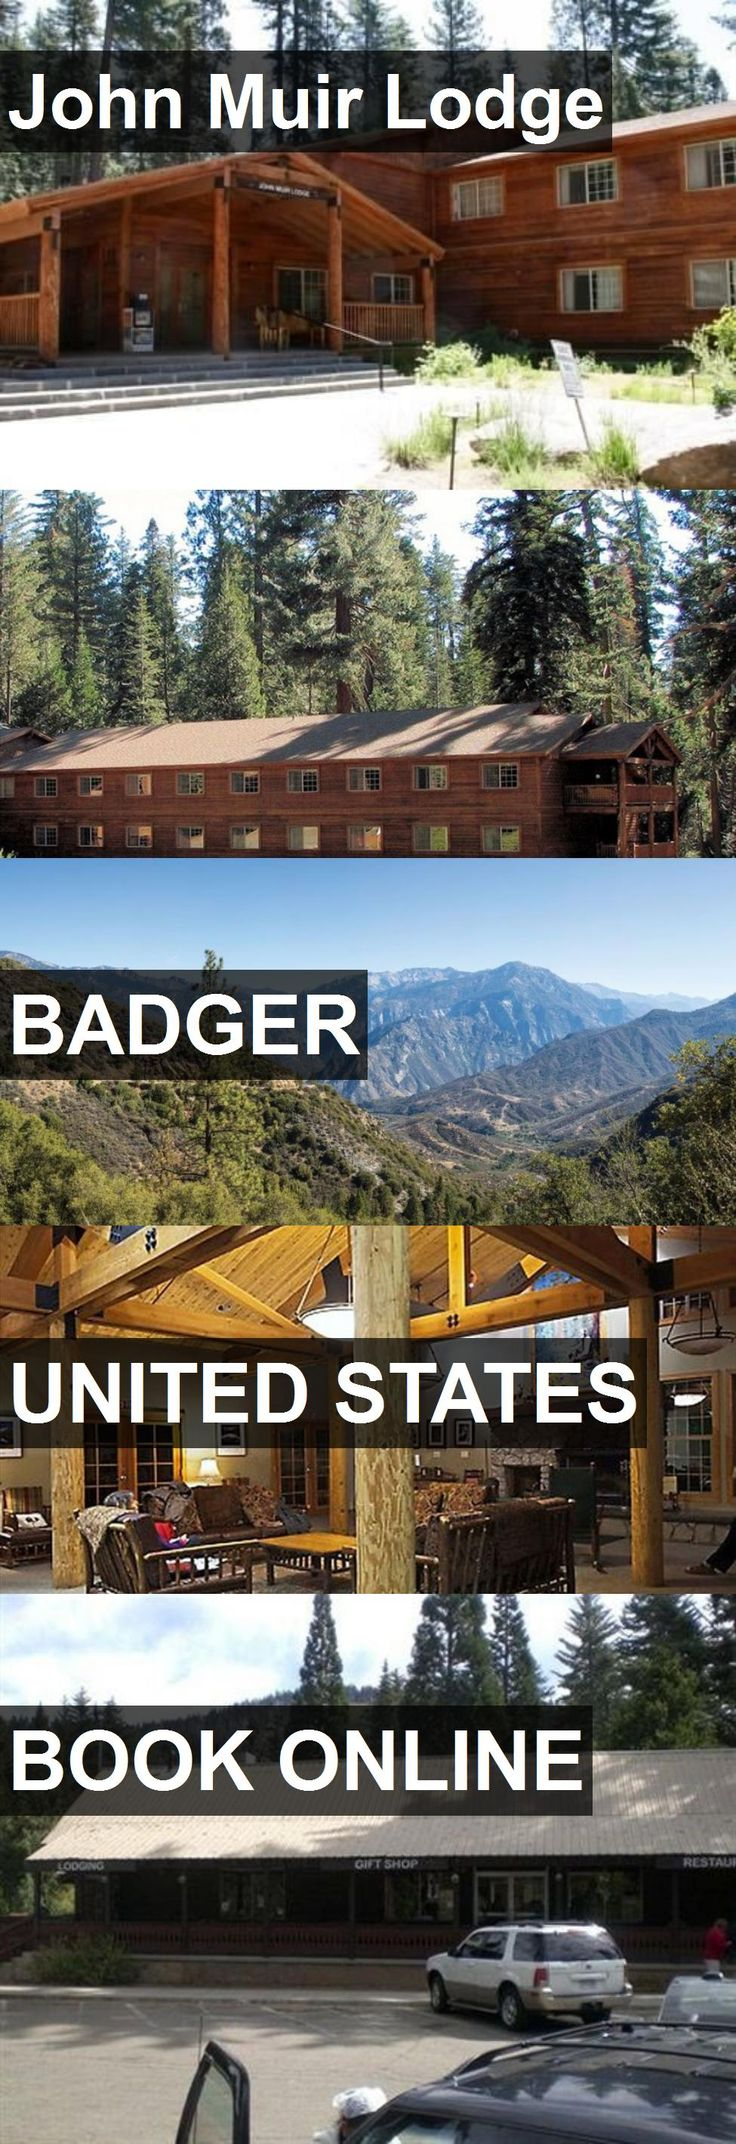 Hotel John Muir Lodge in Badger, United States. For more information, photos, reviews and best prices please follow the link. #UnitedStates #Badger #hotel #travel #vacation